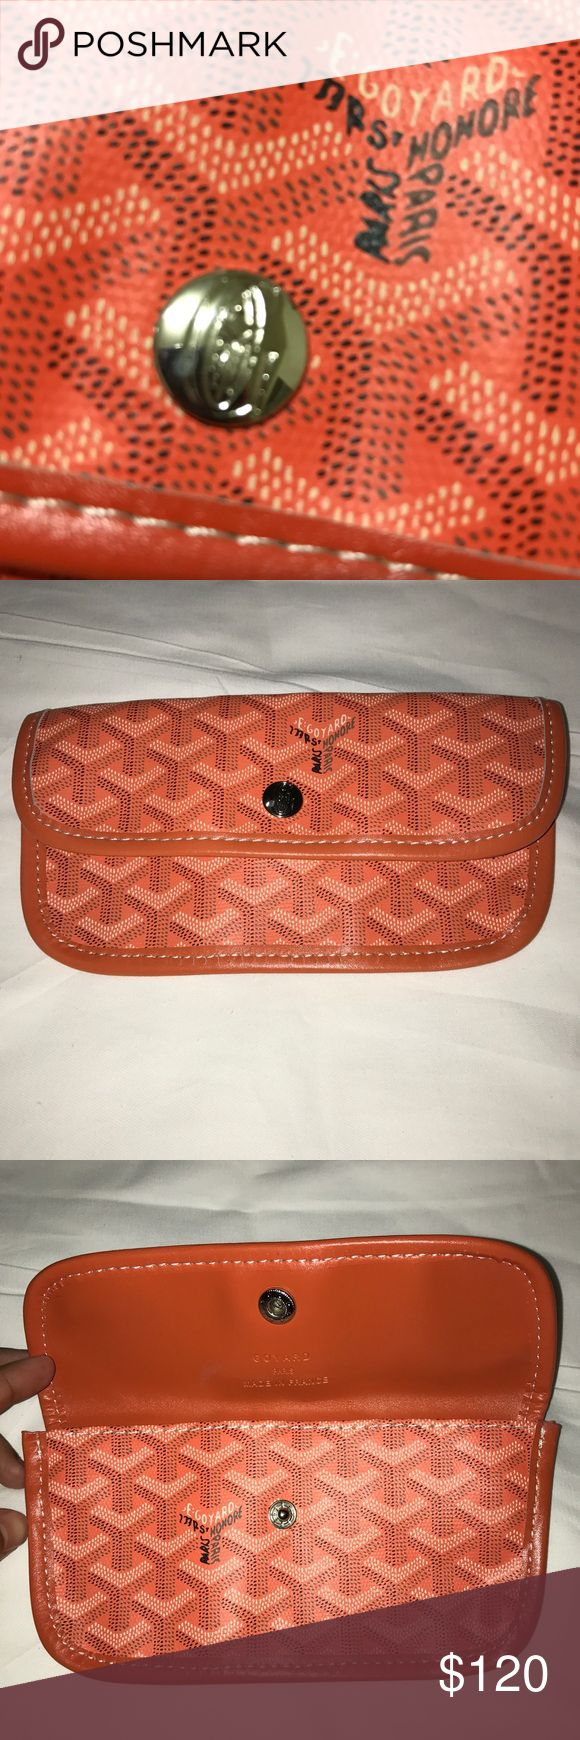 GoYard Wallet Pouch for women's! Preowned!! Pre-Owned!! Perfect use as a wallet or even a mini make up bag!! Not 100% sure if it is authentic but I've used it many times and it's held up perfect! Preowned but still amazing condition! - Same day shipping and handling!  - Price is FIRM unless you're interested in a bundle deal.  - Please feel free to comment or ask any questions! Goyard Bags Wallets